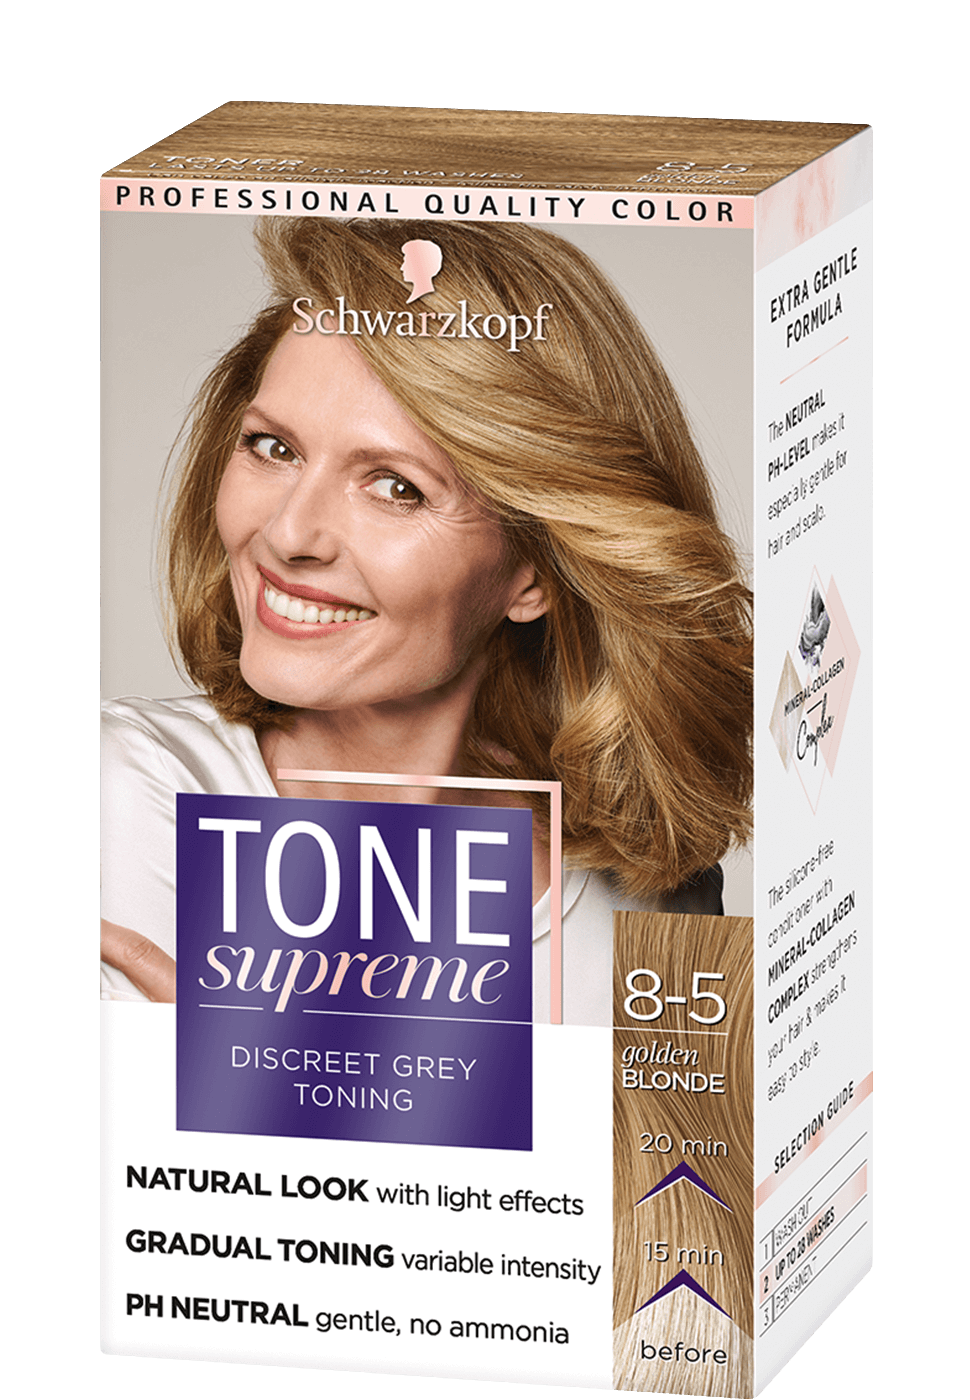 tone_supreme_int_baseline_8_5_golden_blonde_970x1400